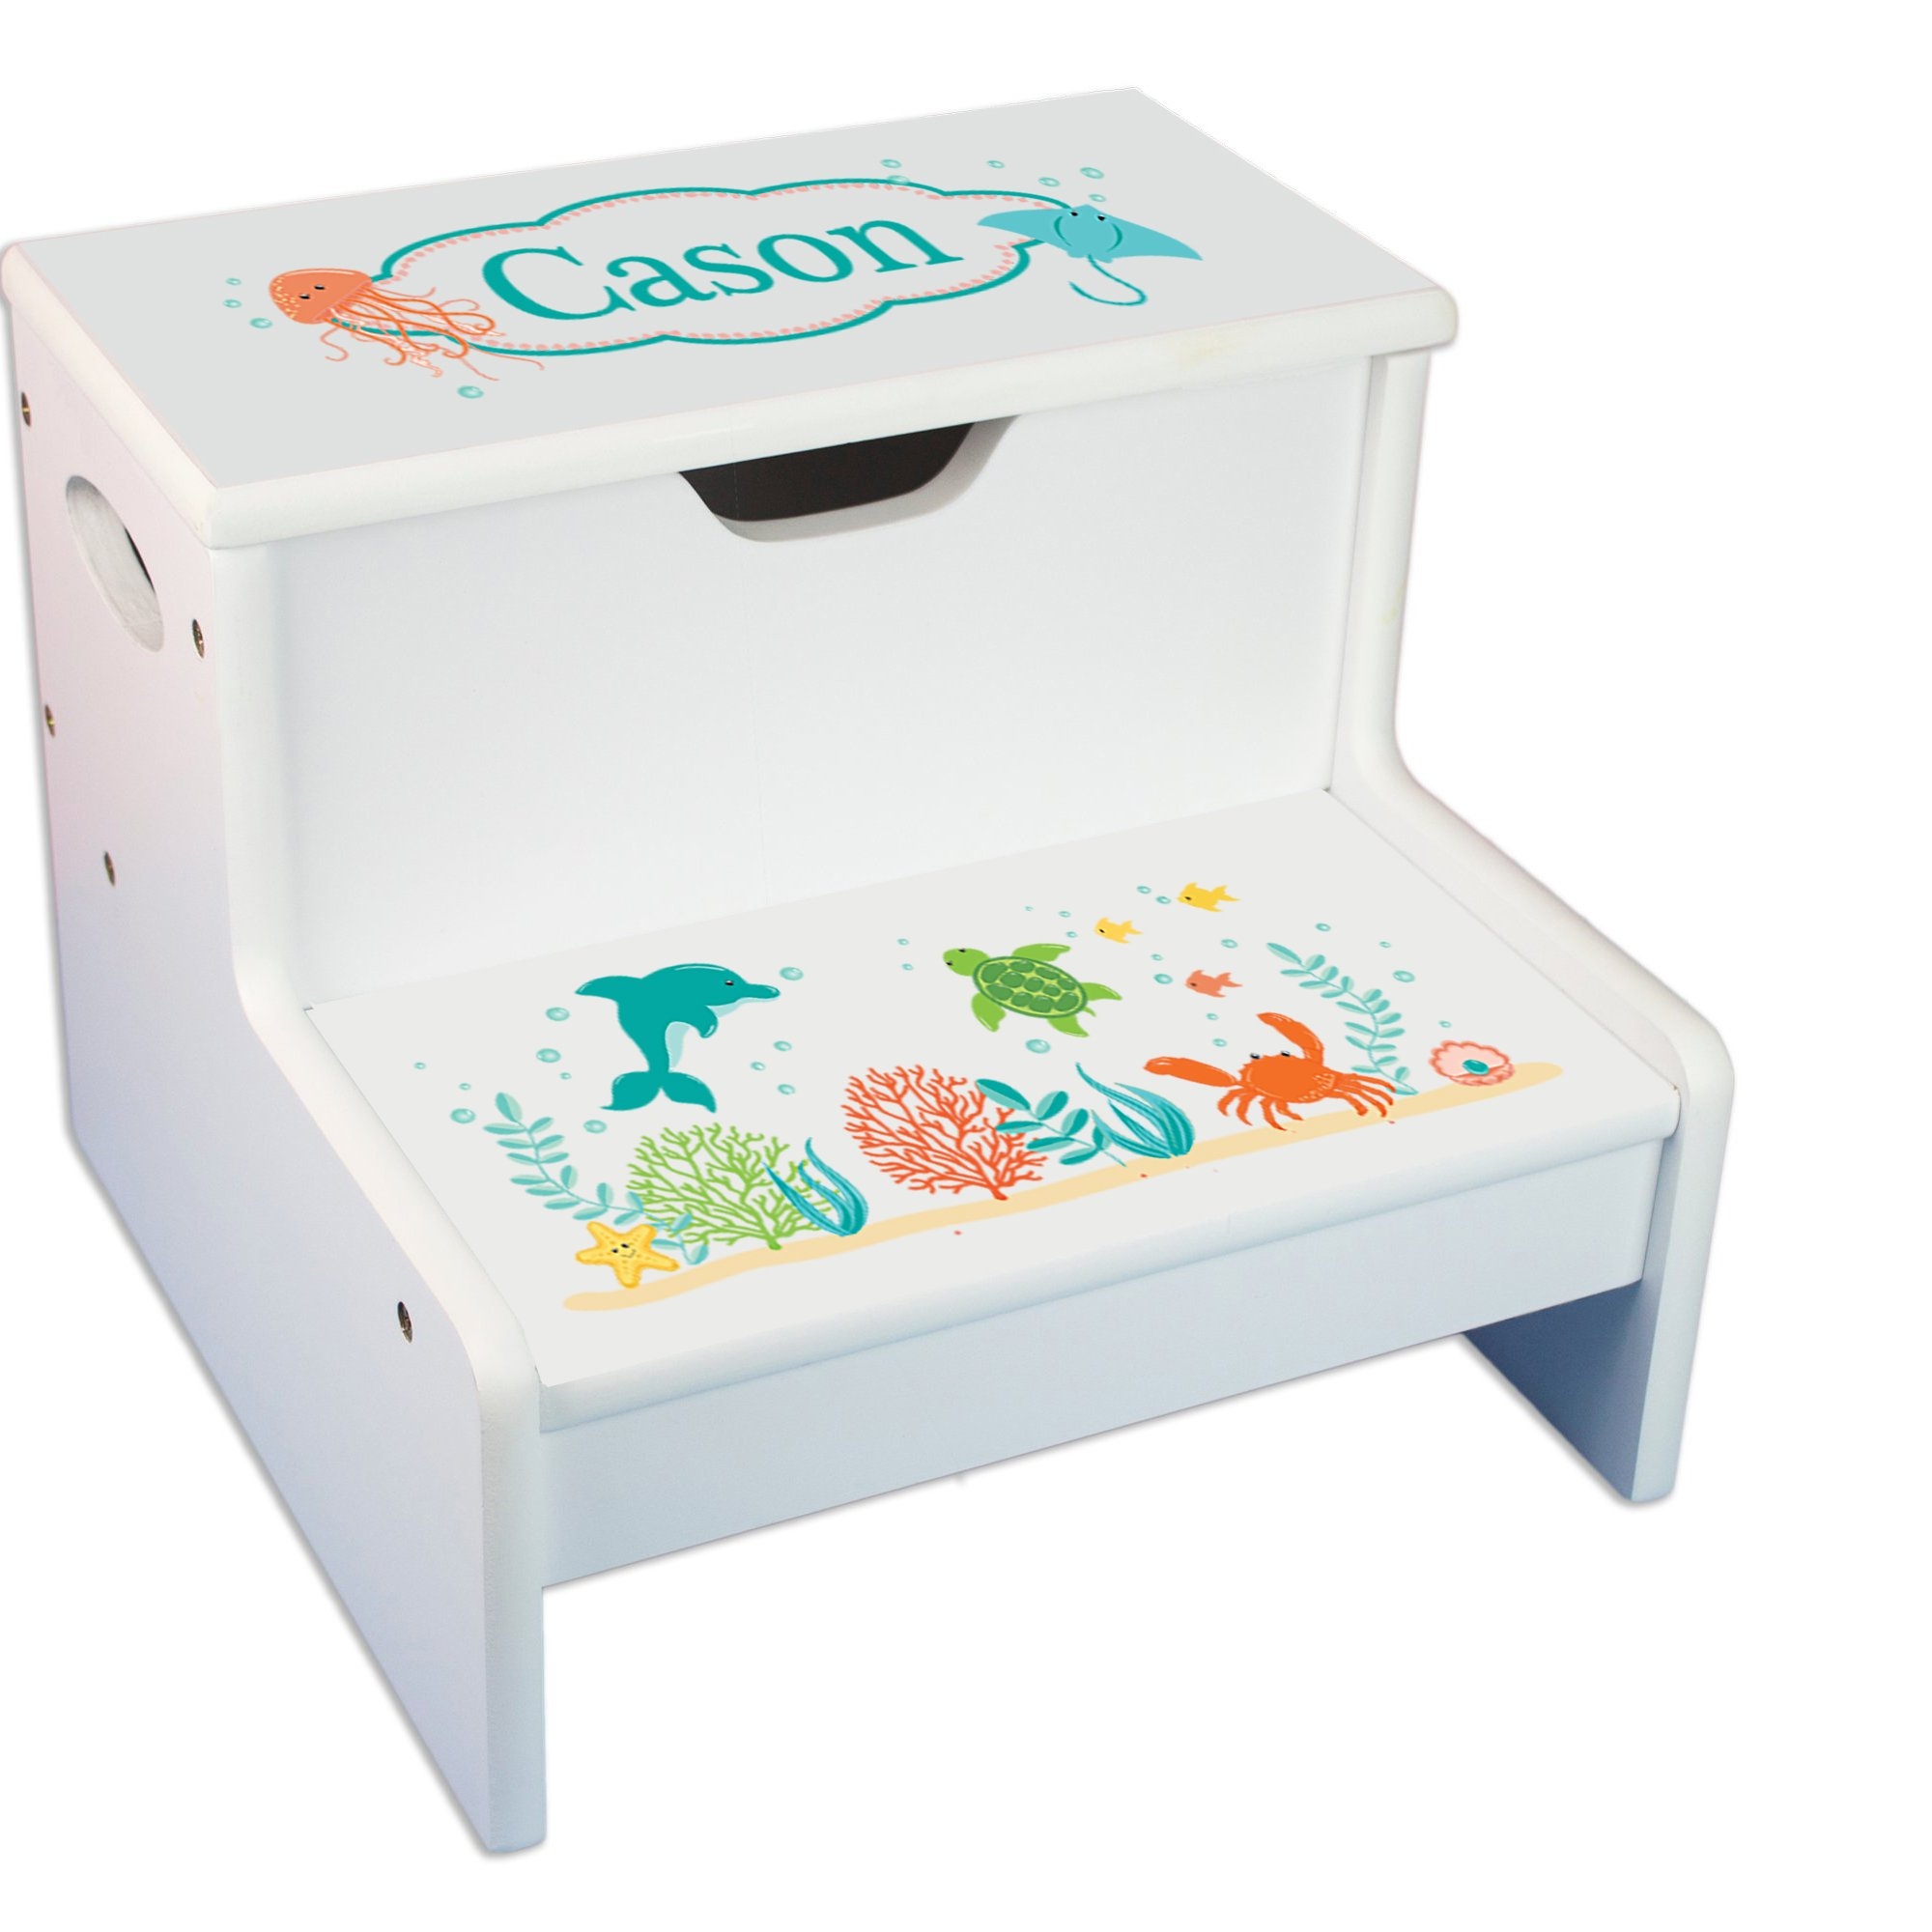 Personalized Sea and Marine White Childrens Step Stool with Storage by MyBambino (Image #1)